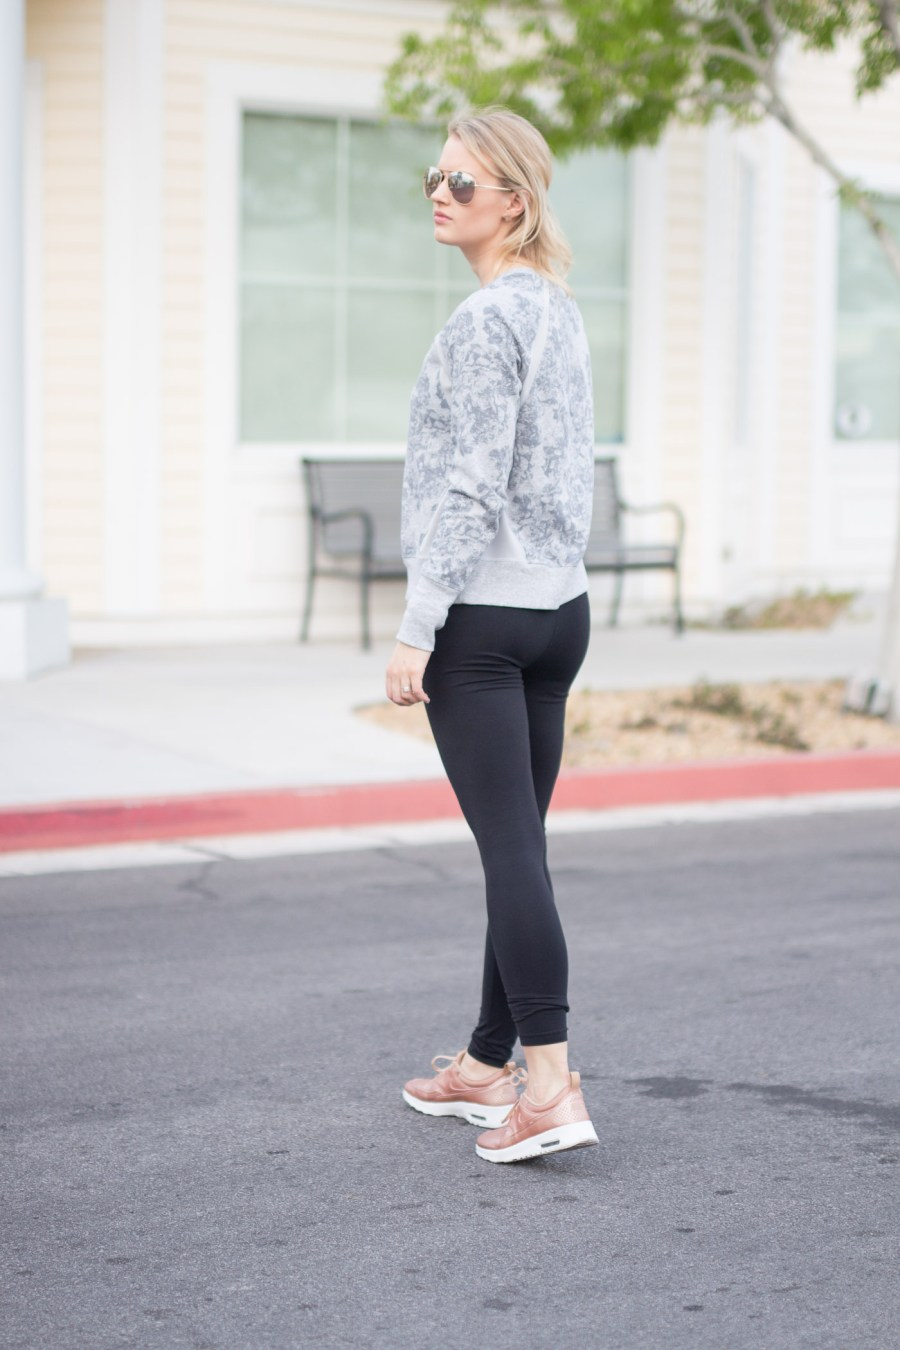 Stores for Activewear, Athleisure, Old Navy, Target, Nordstrom, fashion blog, Treats and Trends, gym outfit idea